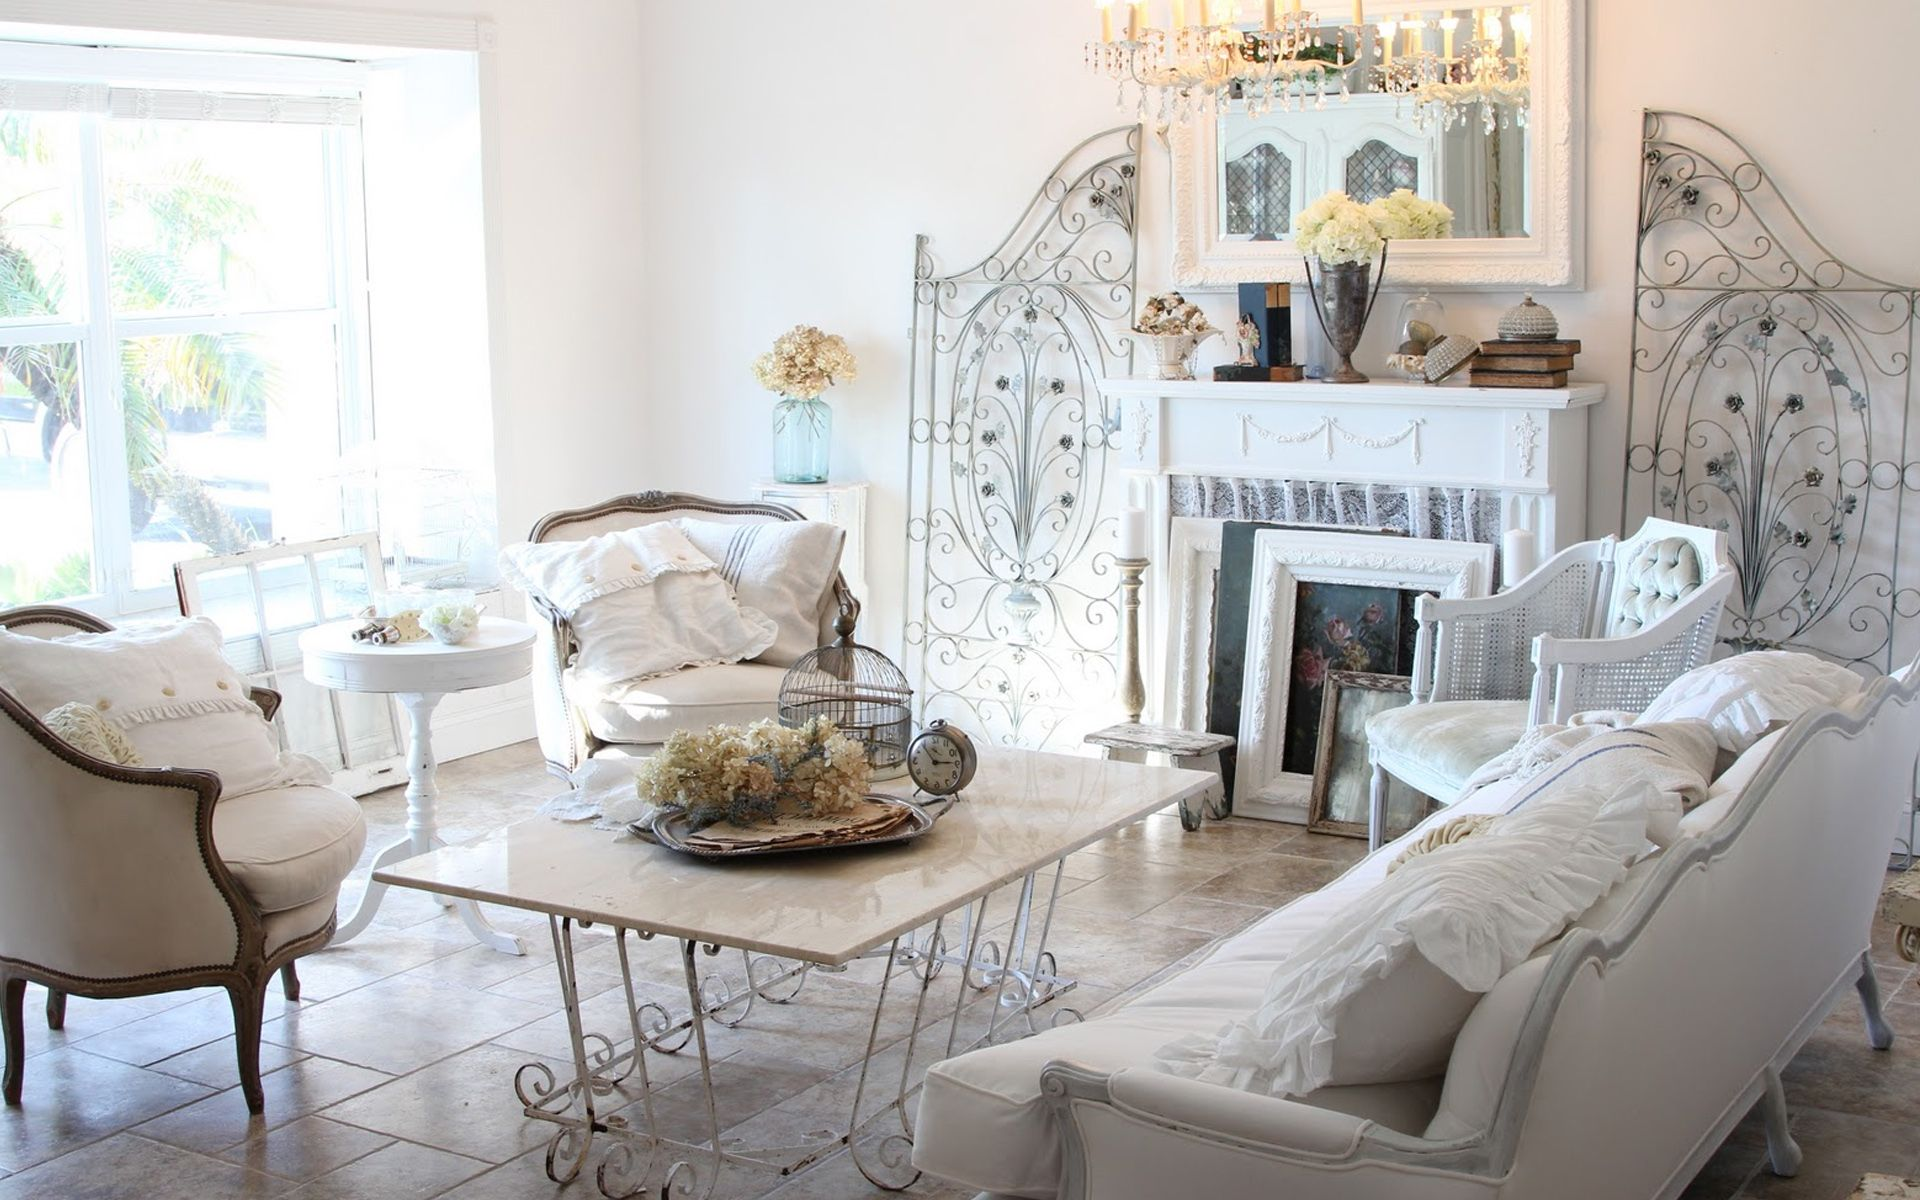 Bright shabby chic living room with ruffles on pillows | Shabby Chic ...